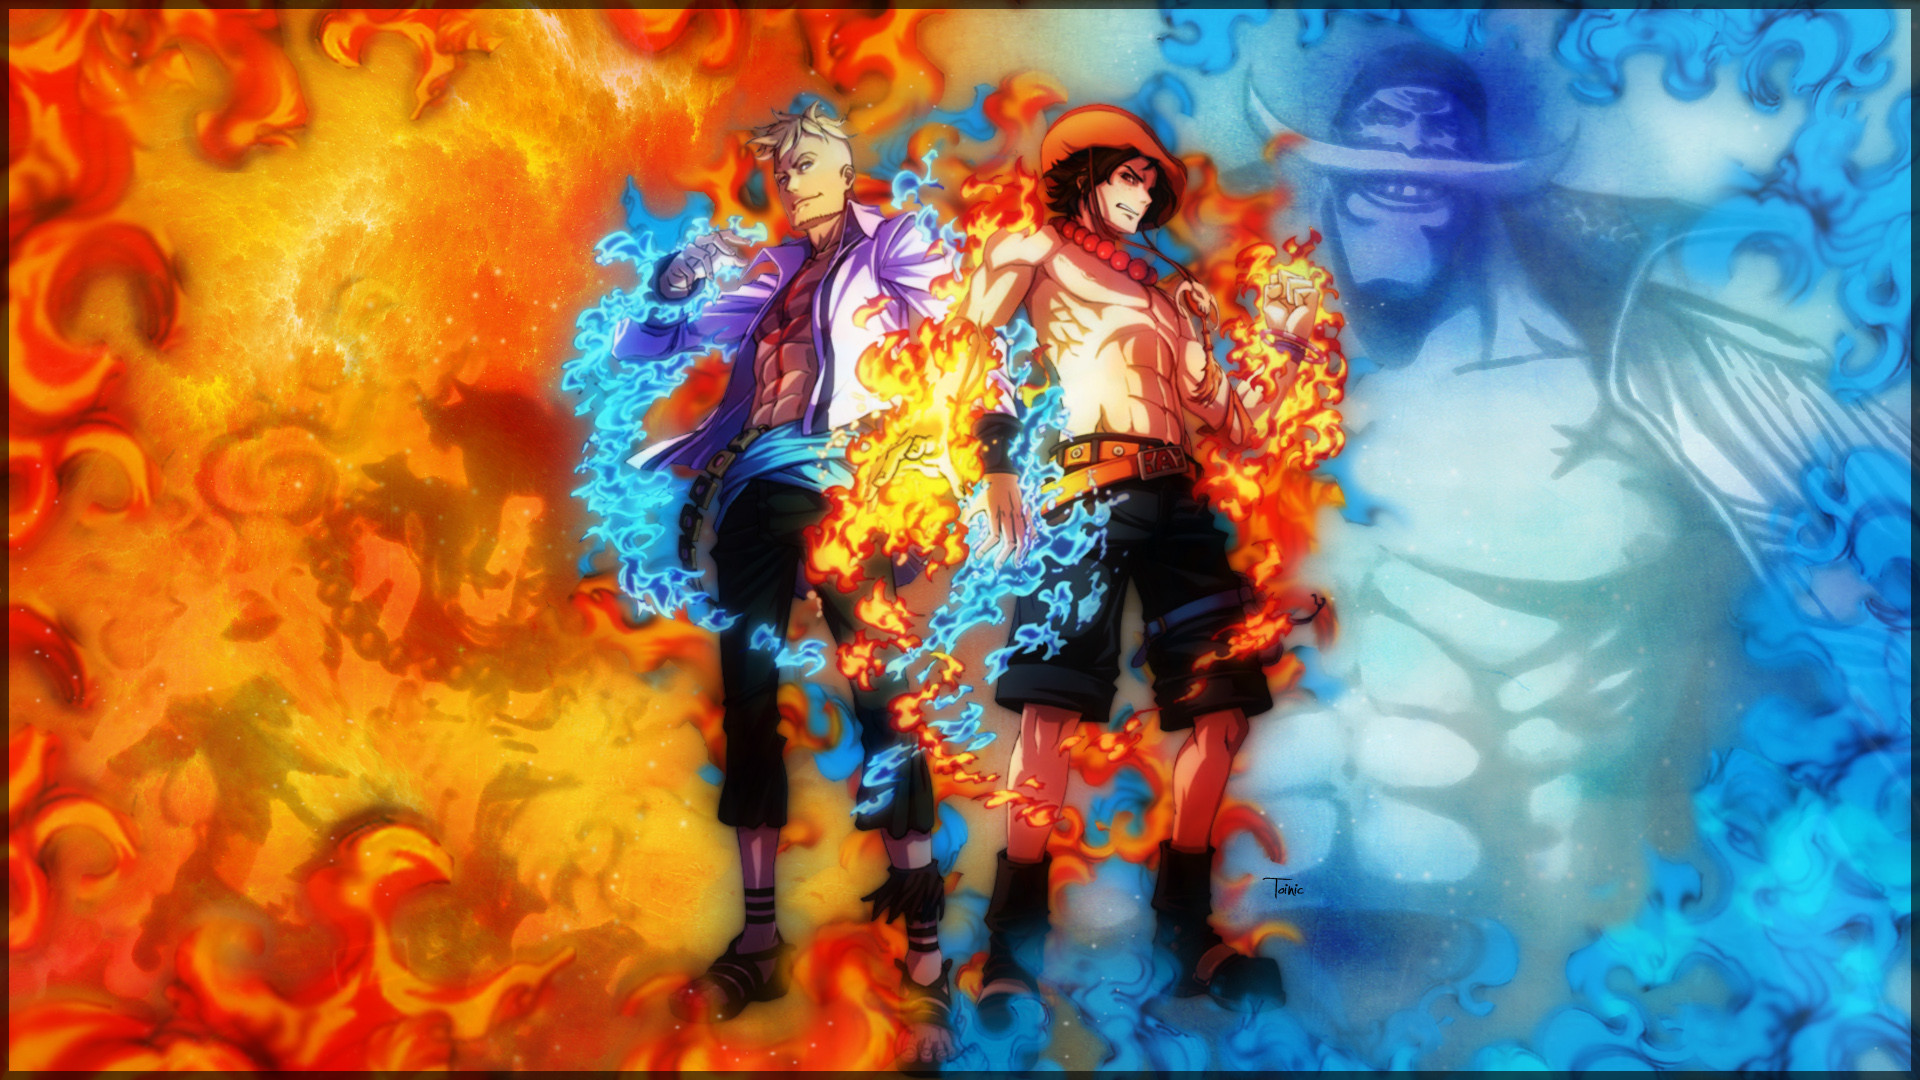 Res: 1920x1080, One Piece Wallpaper 1920 x 1080